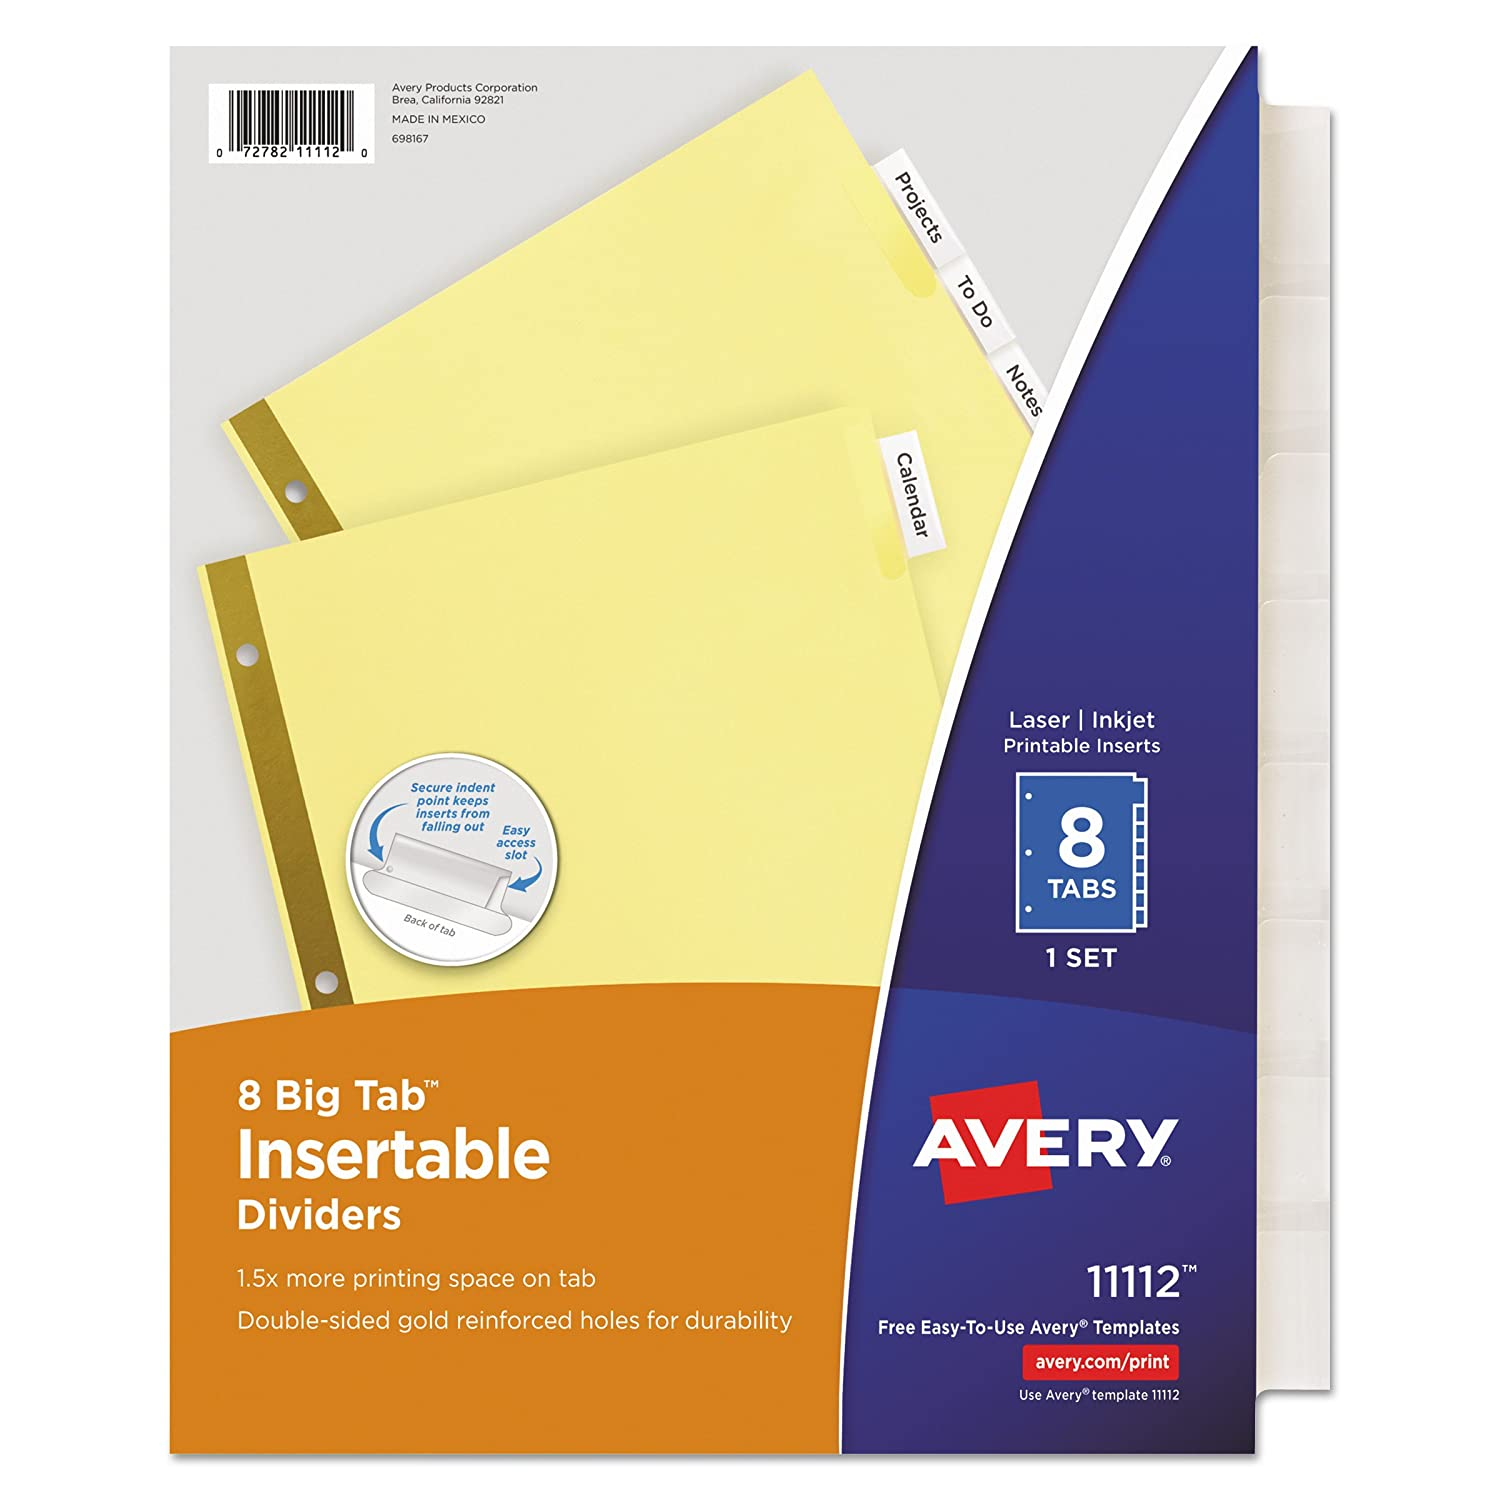 Amazoncom Avery Insertable Big Tab Dividers Tab Letter - Avery print on tabs template